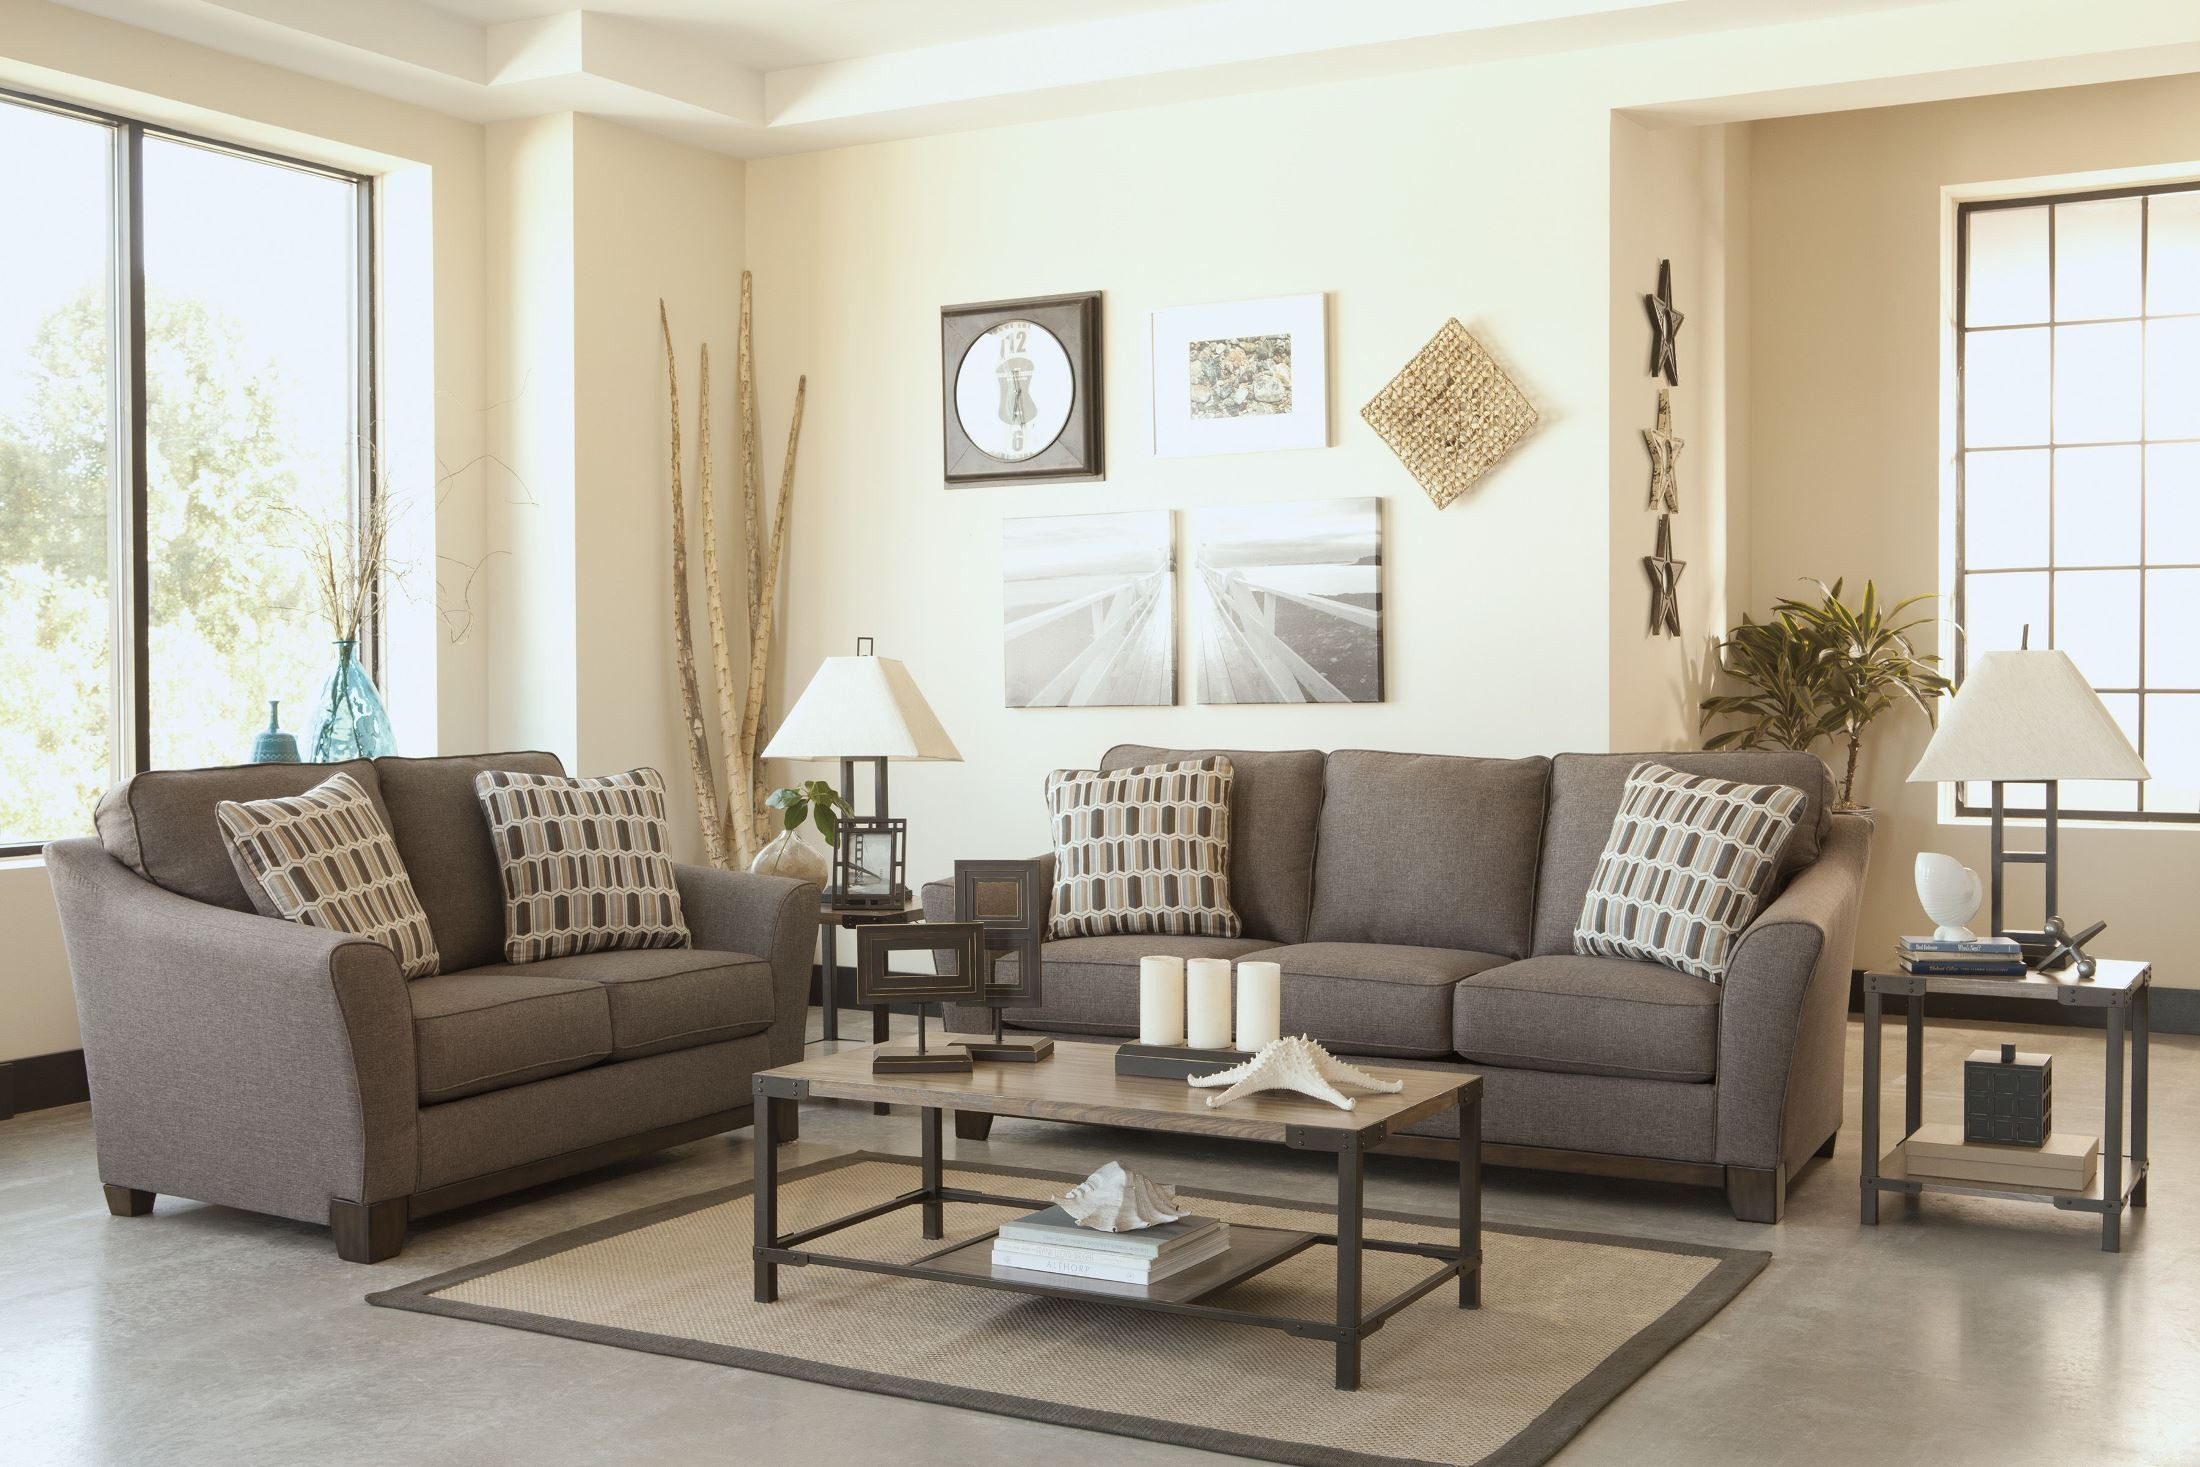 Janley Slate Living Room Set From Ashley 43804 38 35